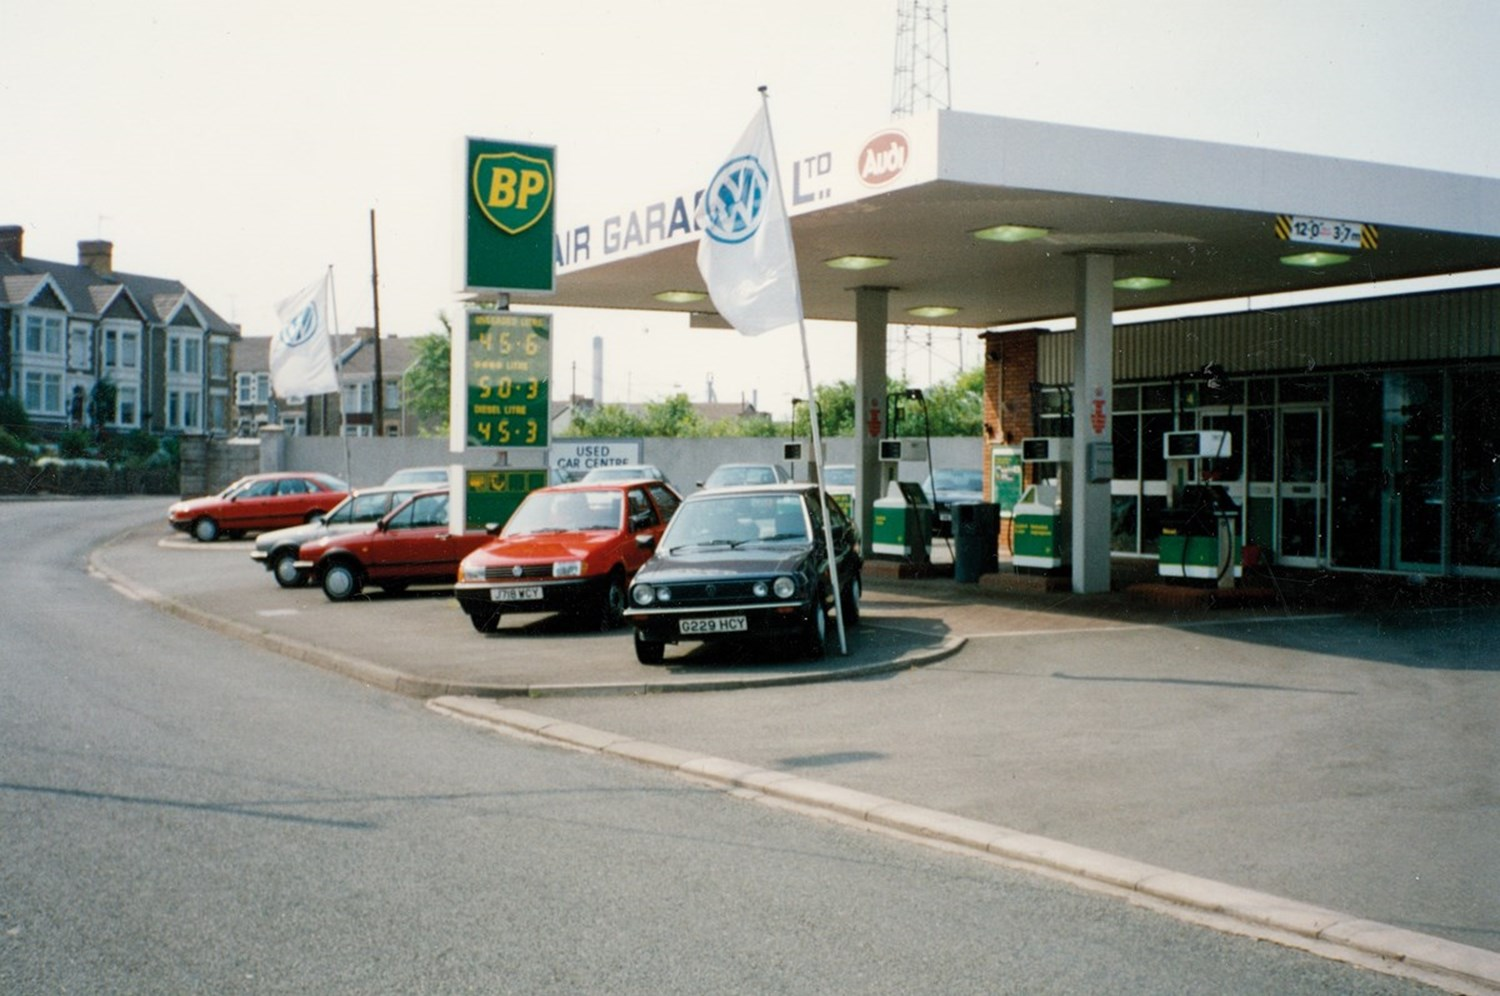 Old image of garage forecourt